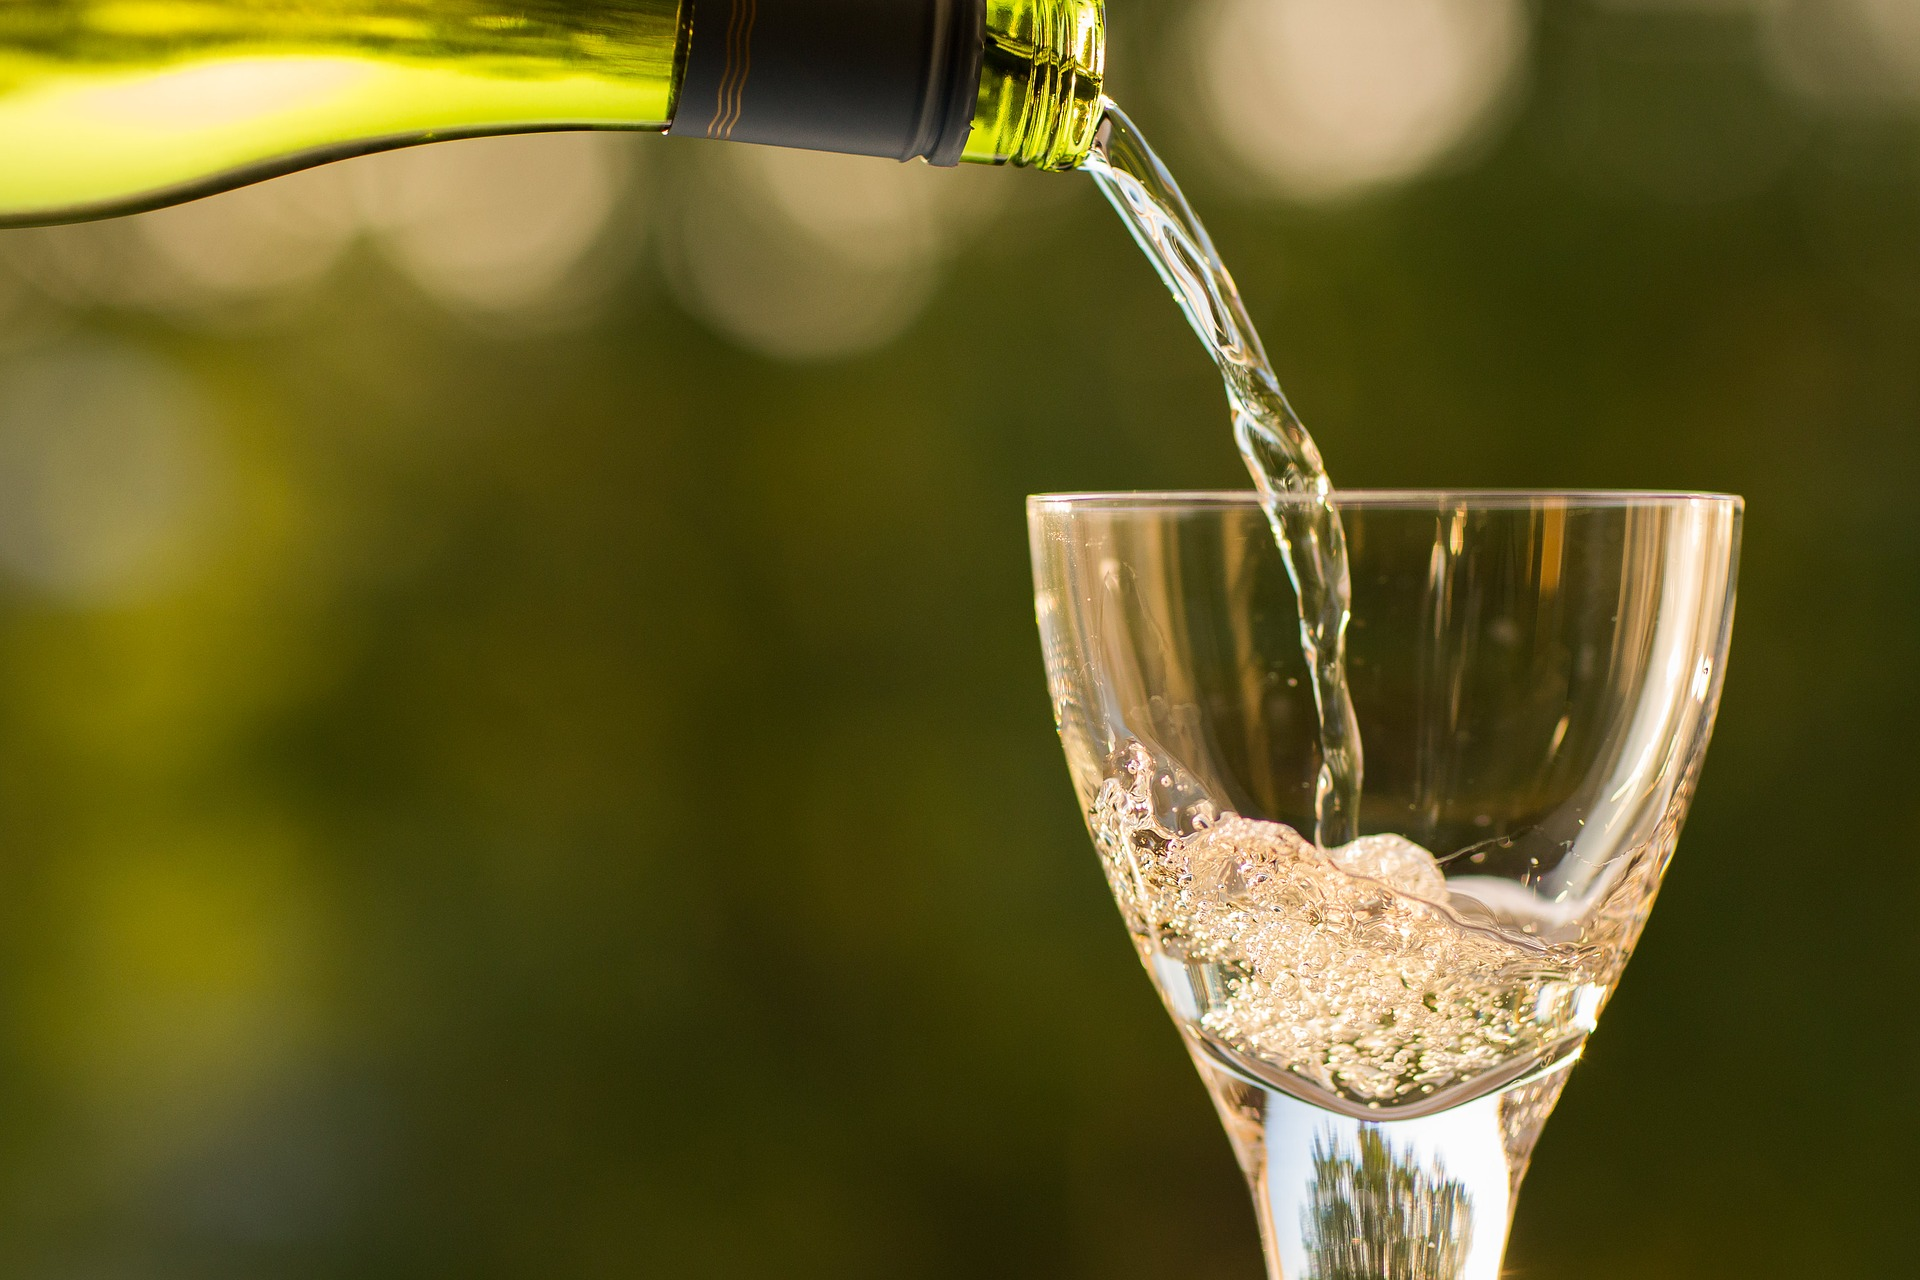 How does alcohol affect stroke risk? Study investigates